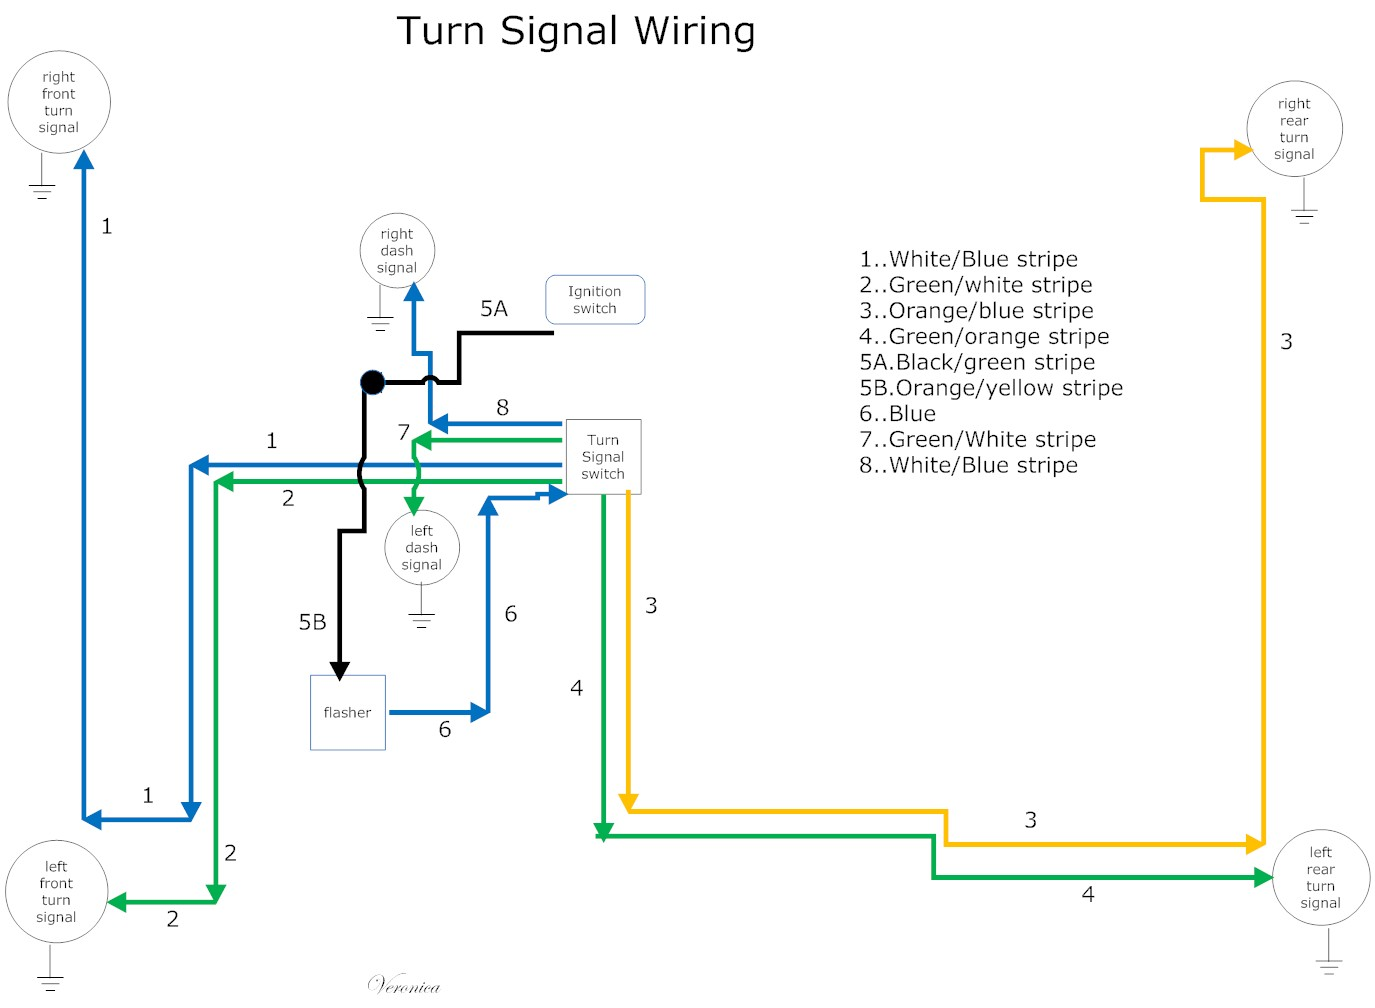 A Special Series For Universal Turn Signal Wiring Diagram Nilzanet – Universal Turn Signal Wiring Diagram